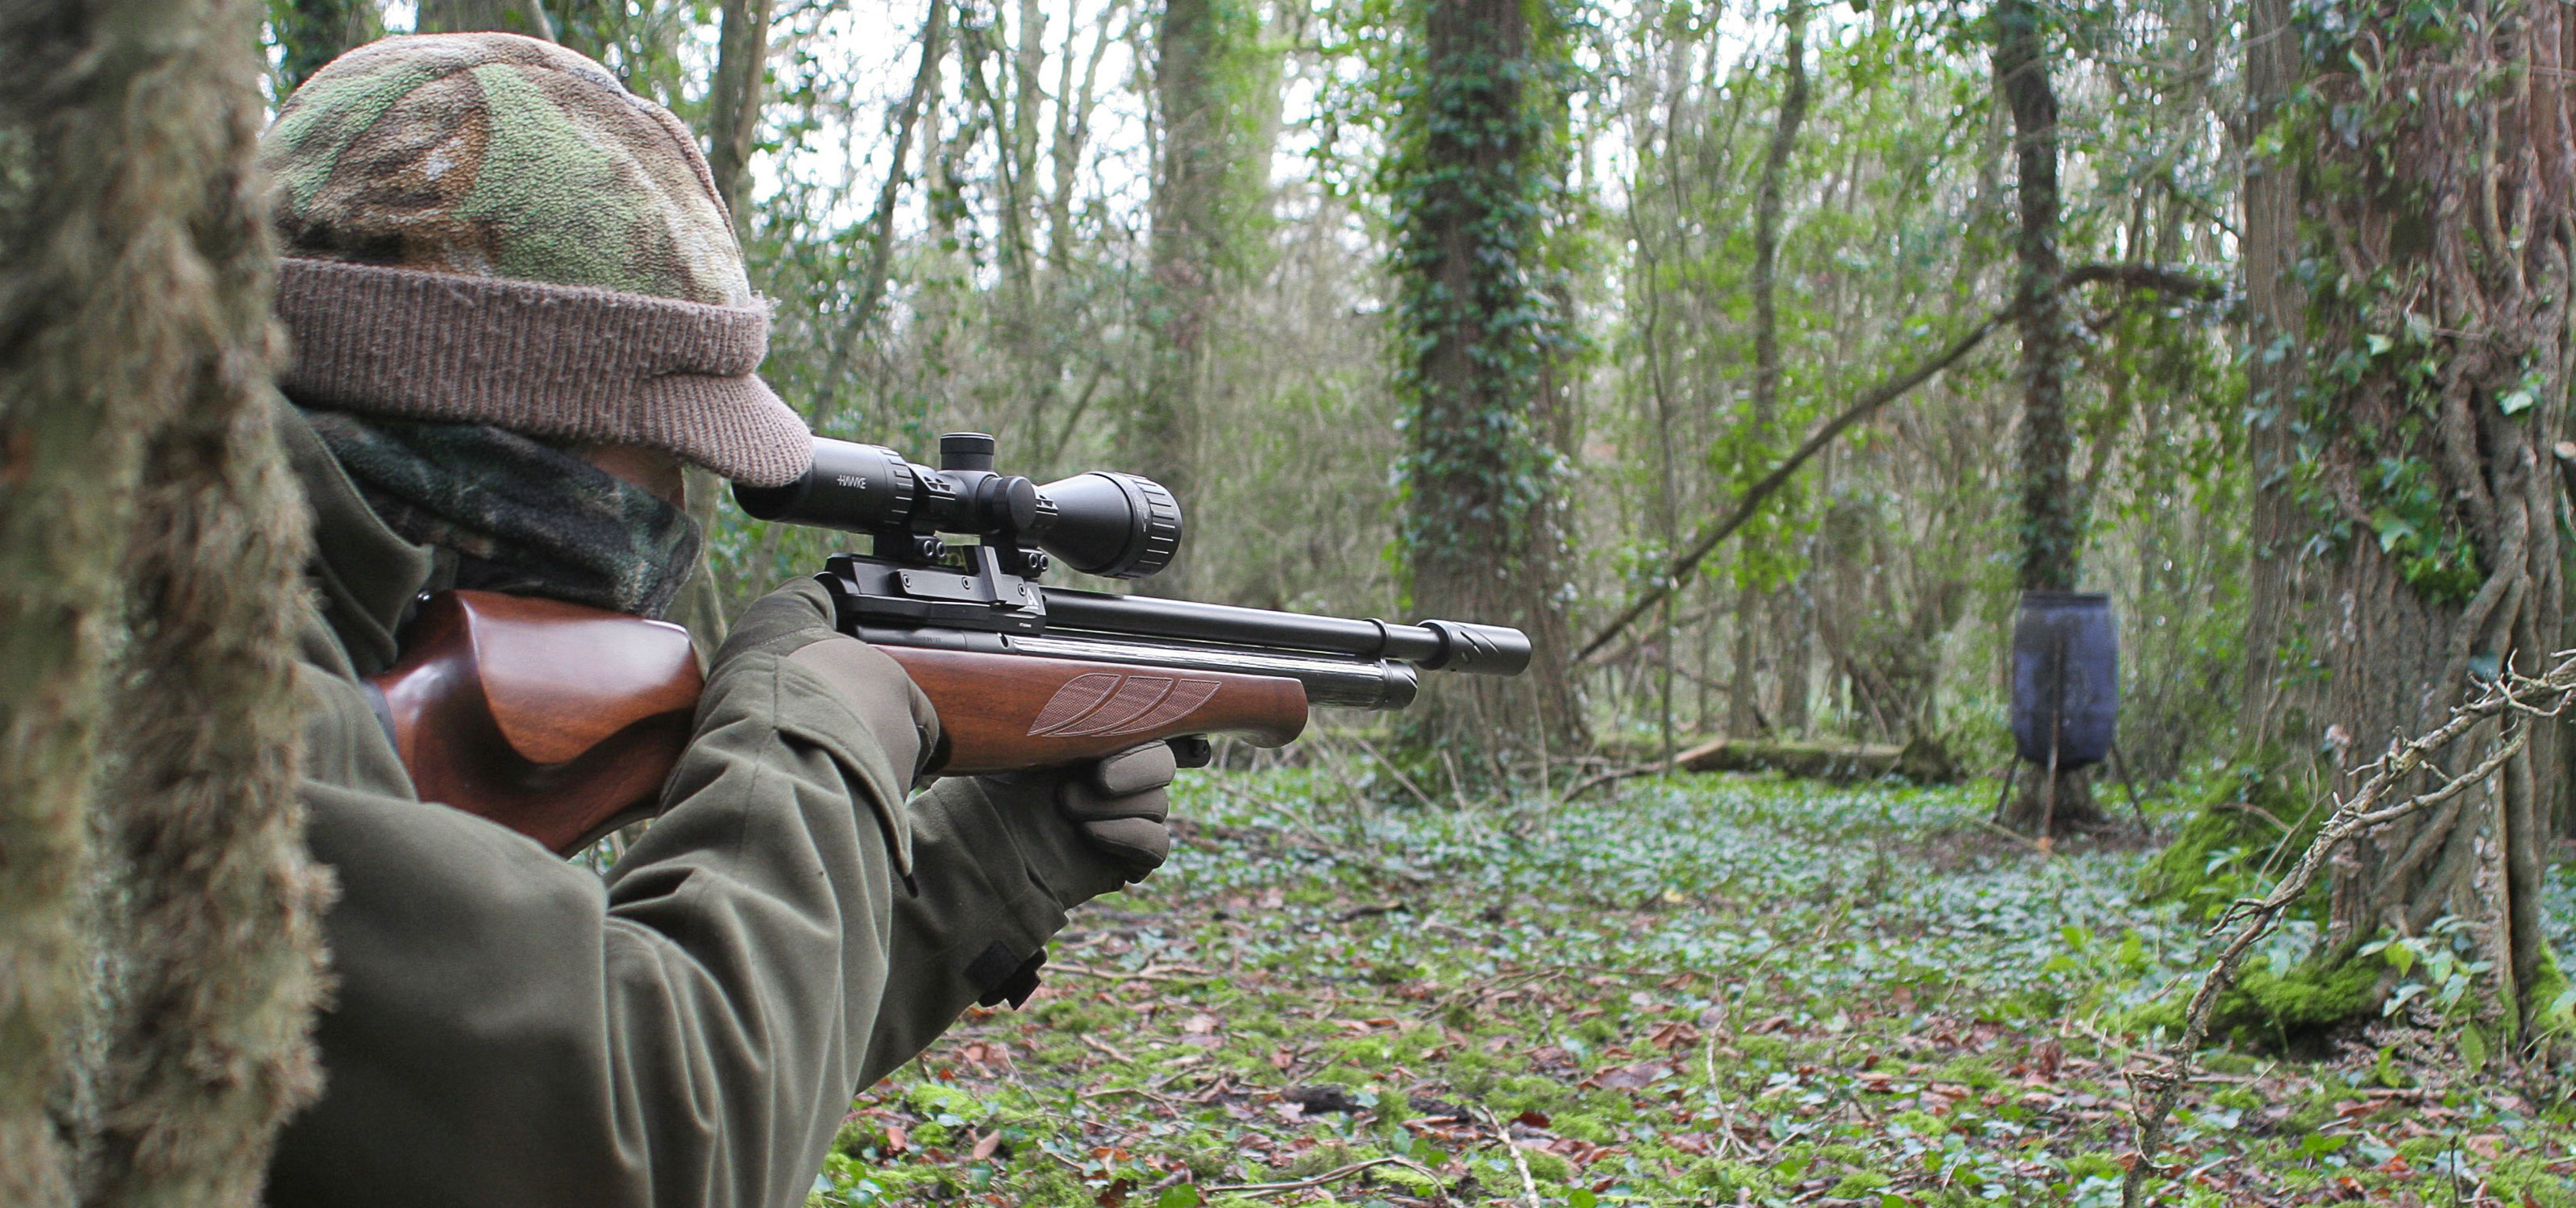 Mat Manning : Mat tracks a squirrel through his scope as it makes its way towards one of the feeders.